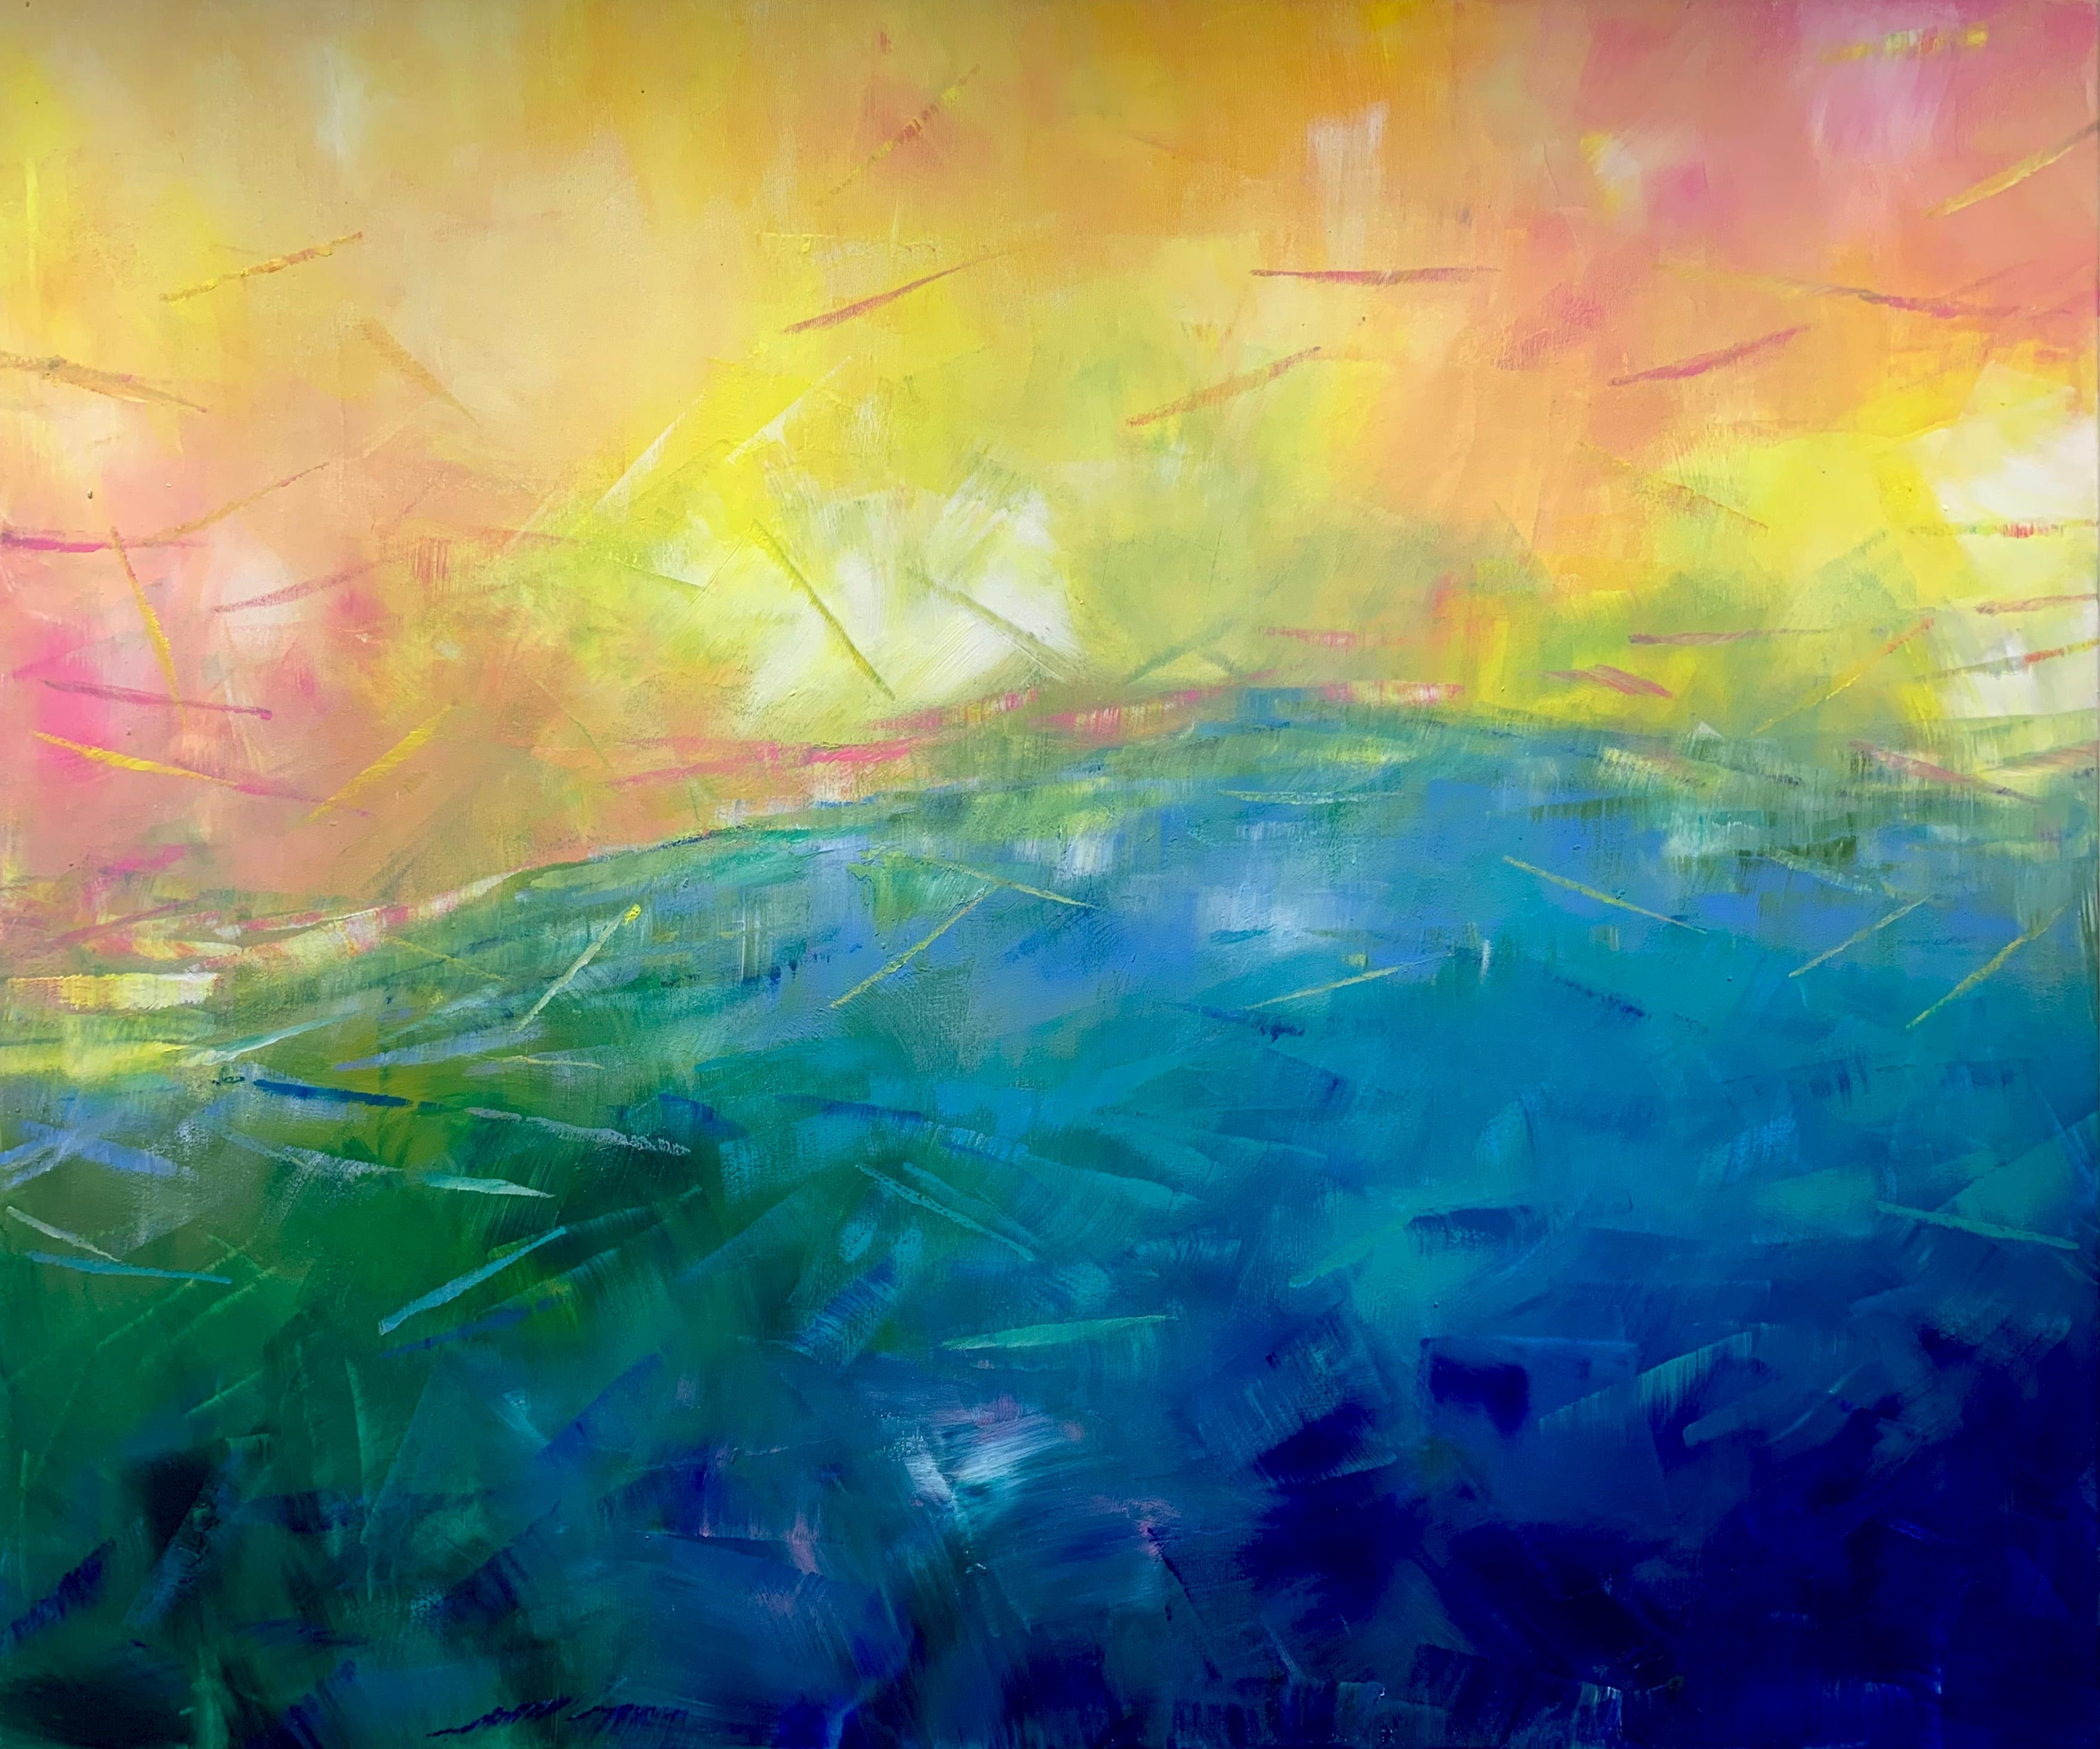 Sunshine on my mind by Katharina Husslein - contemporary abstract landscape